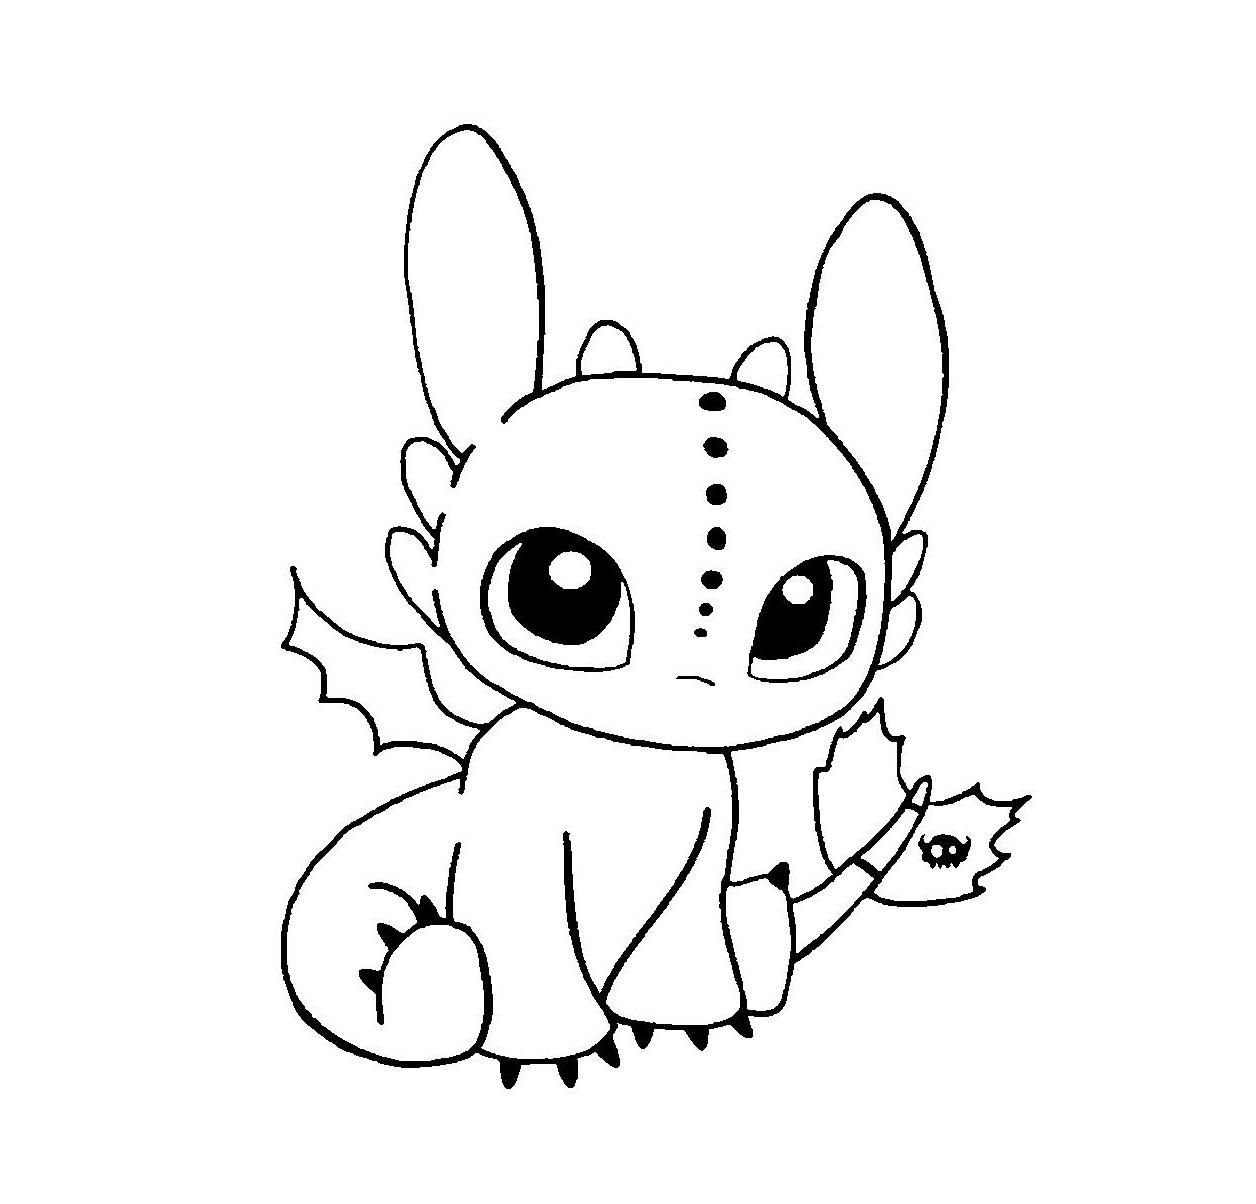 toothless dragon coloring pages baby toothless dragon coloring pages coloring home toothless pages coloring dragon